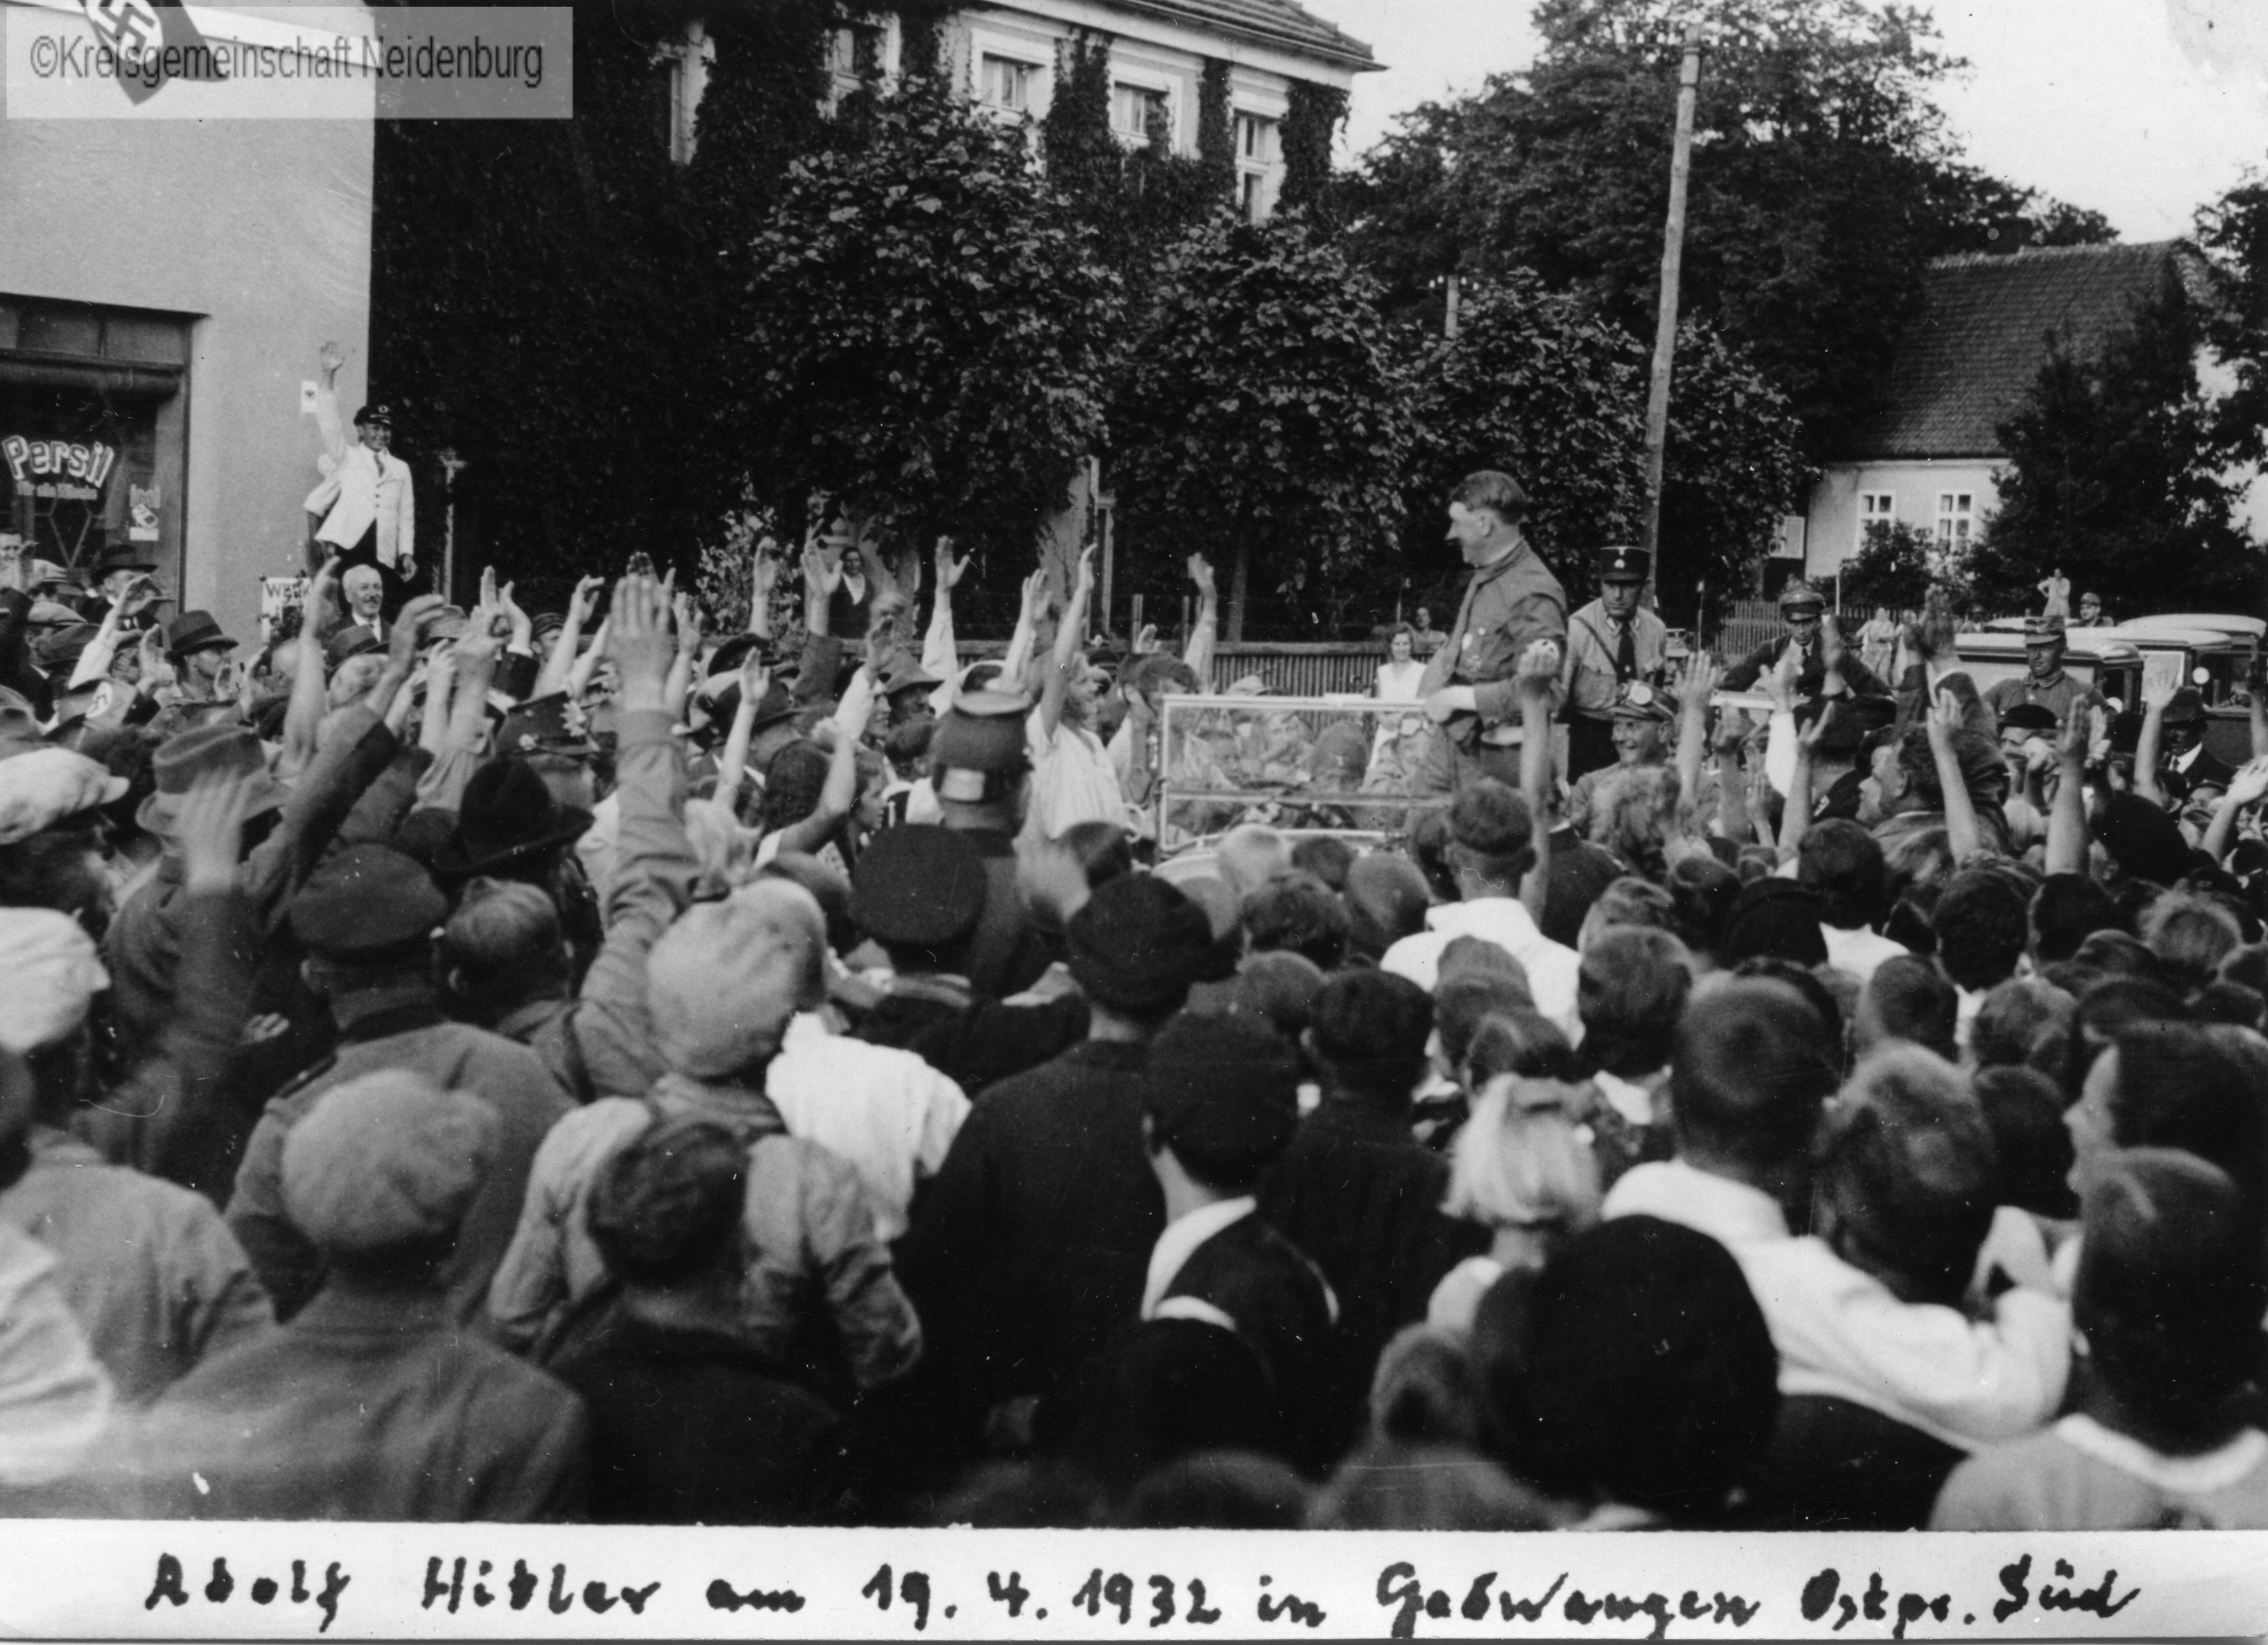 Adolf Hitler drives through Neidenburg